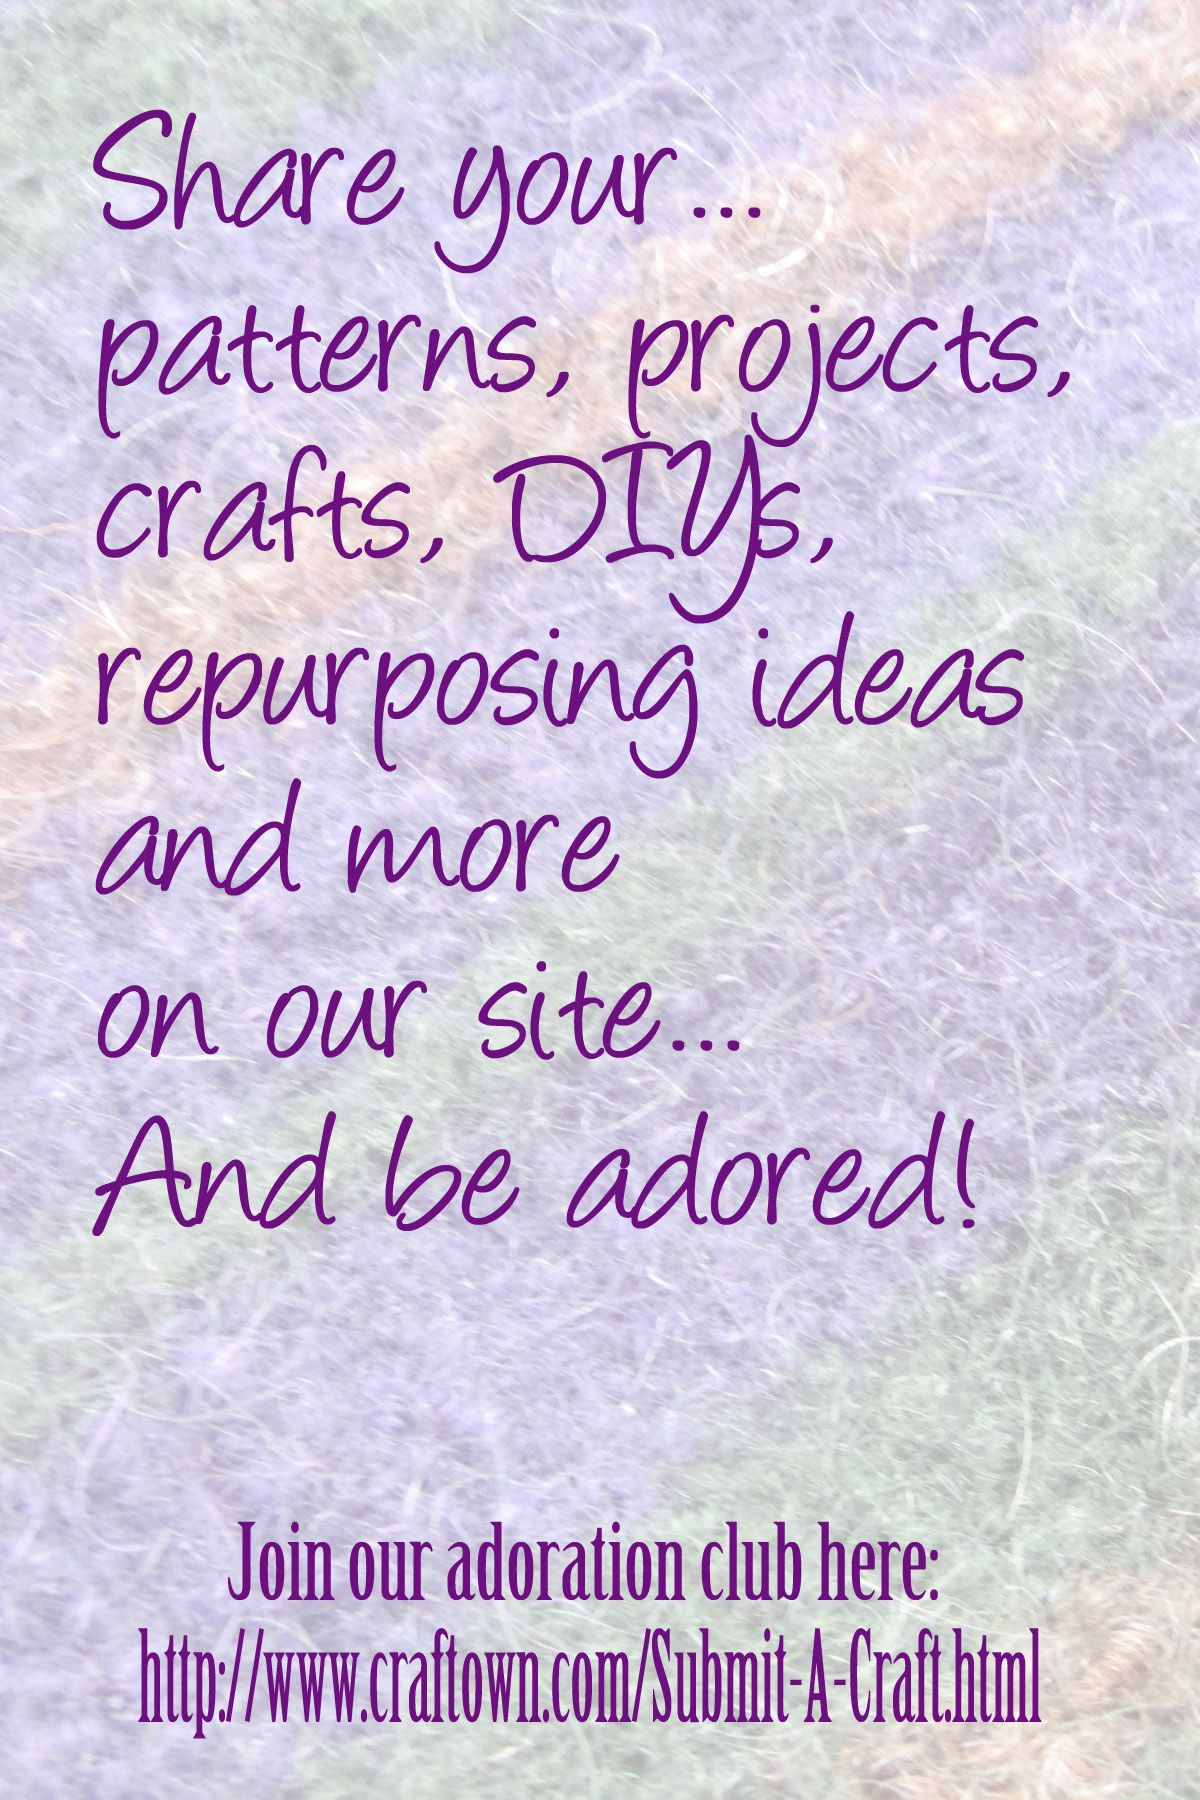 Share your...patterns, projects, crafts, DIYs and more on our site...And be adored!  Join our adoration club here> http://www.craftown.com/Submit-A-Craft.html